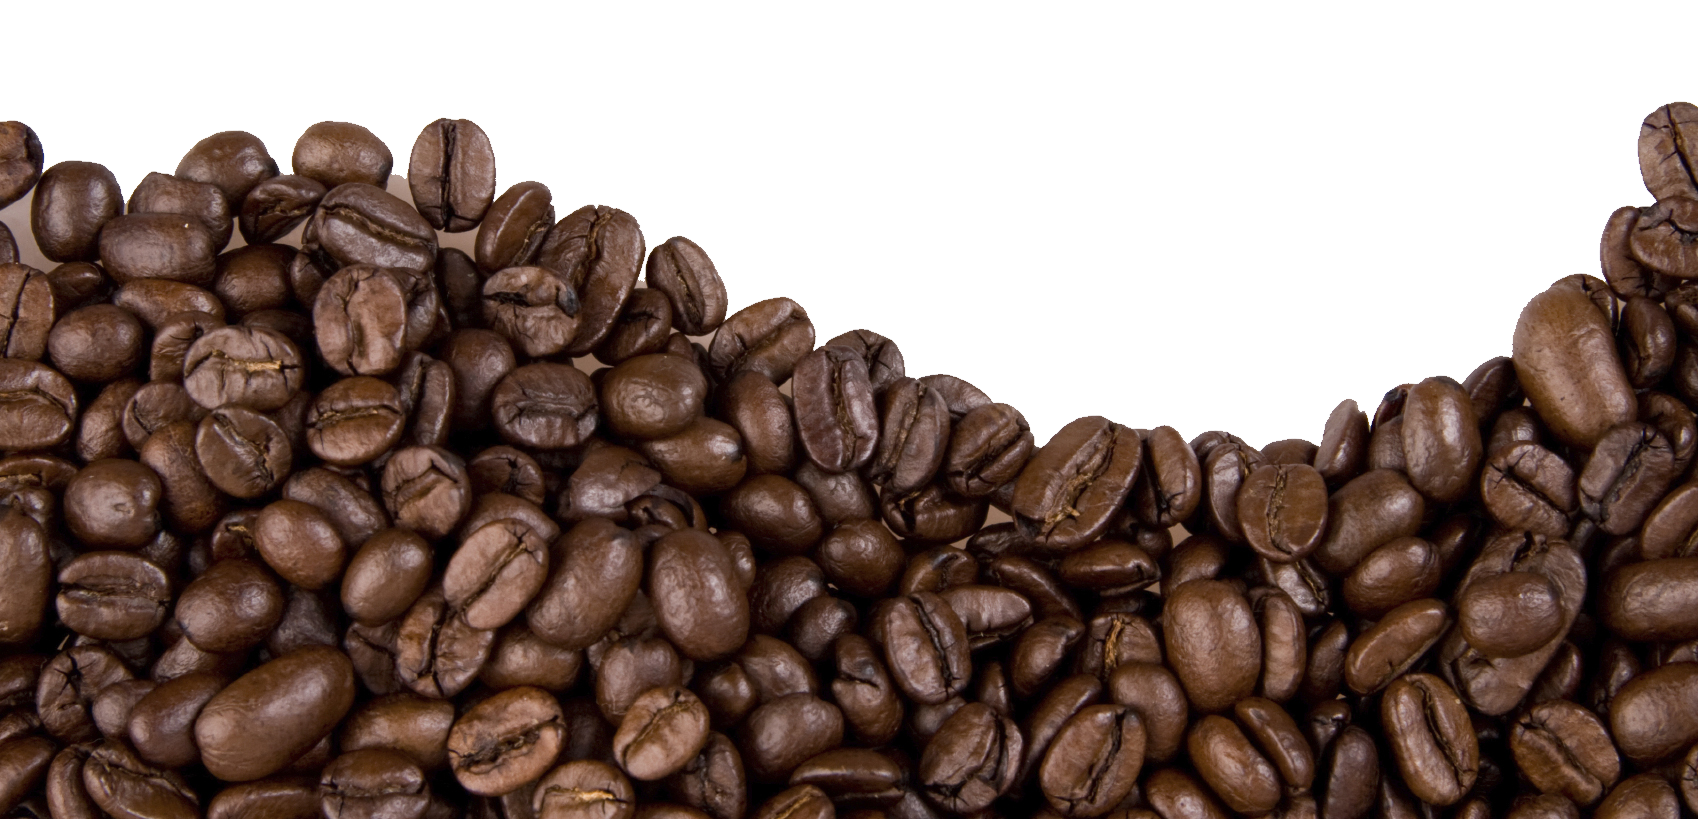 Clipart mountain ground. Coffee plant grounds pencil